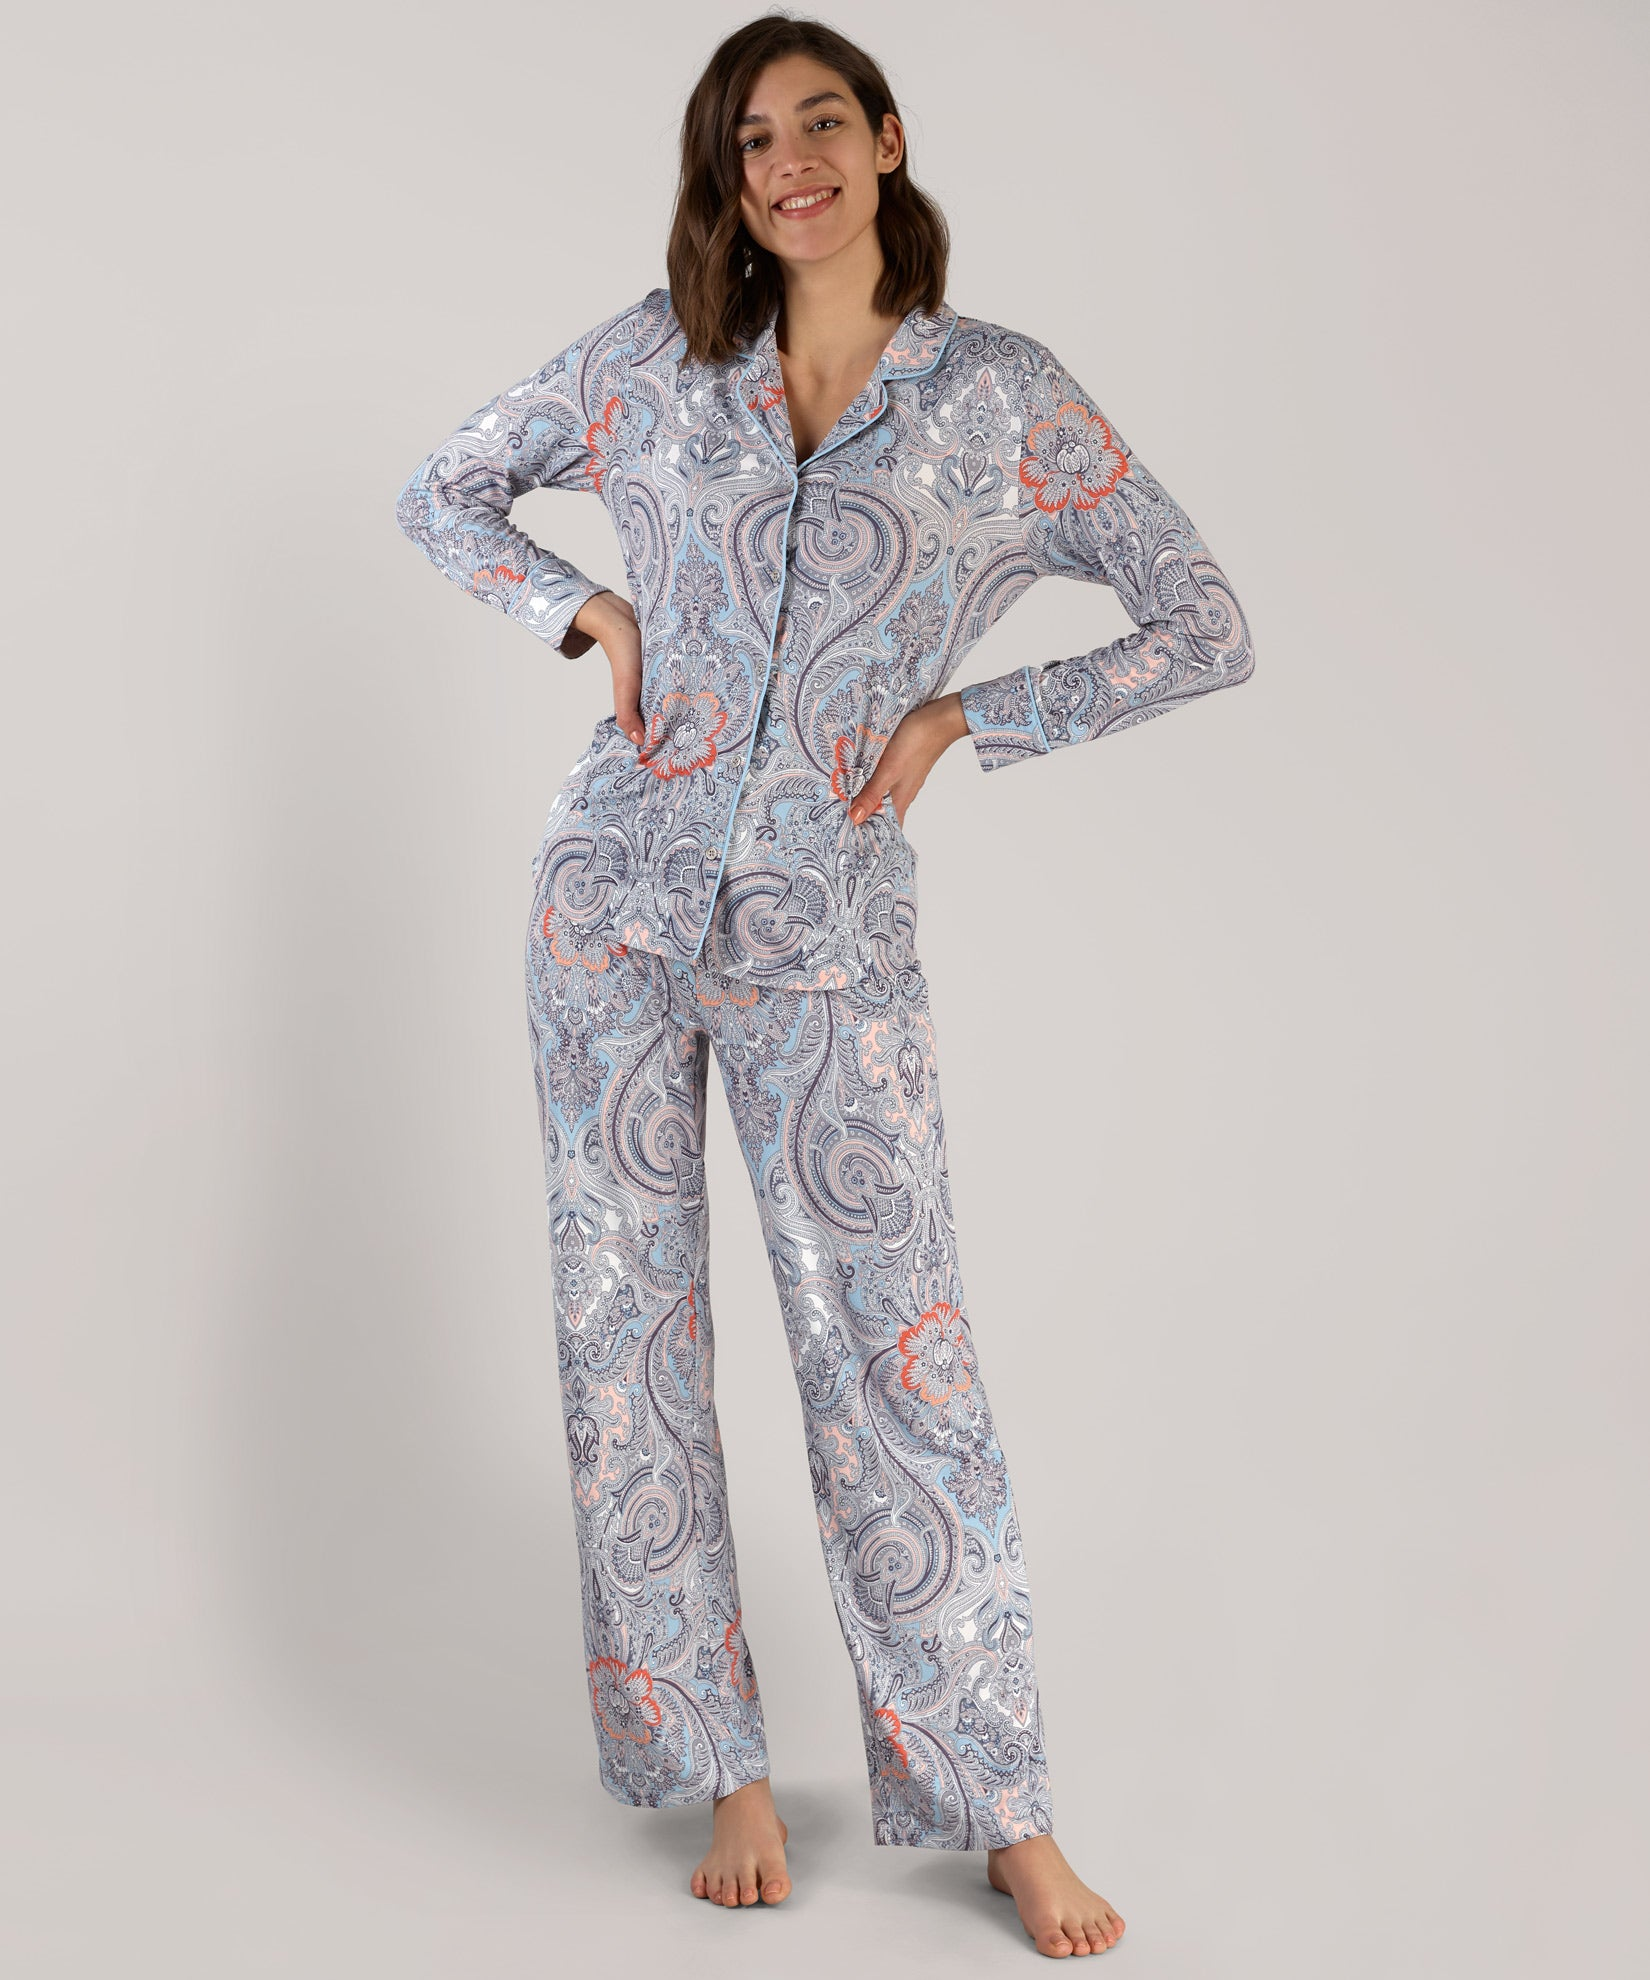 Avalon PJ Set - Avalon PJ Set